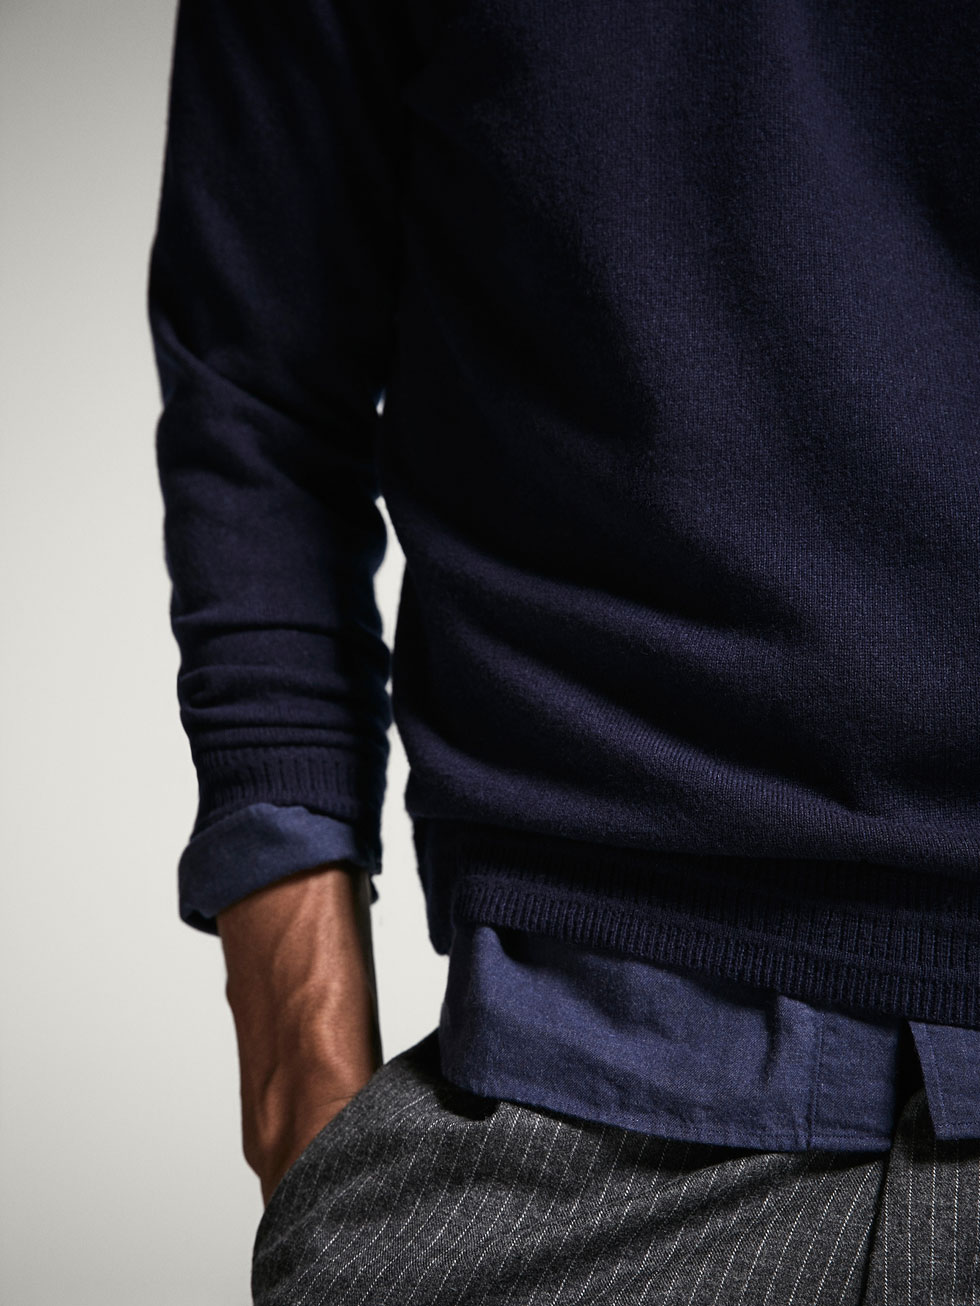 SOLID-COLOURED WOOL AND CASHMERE SWEATER - Men - Massimo Dutti